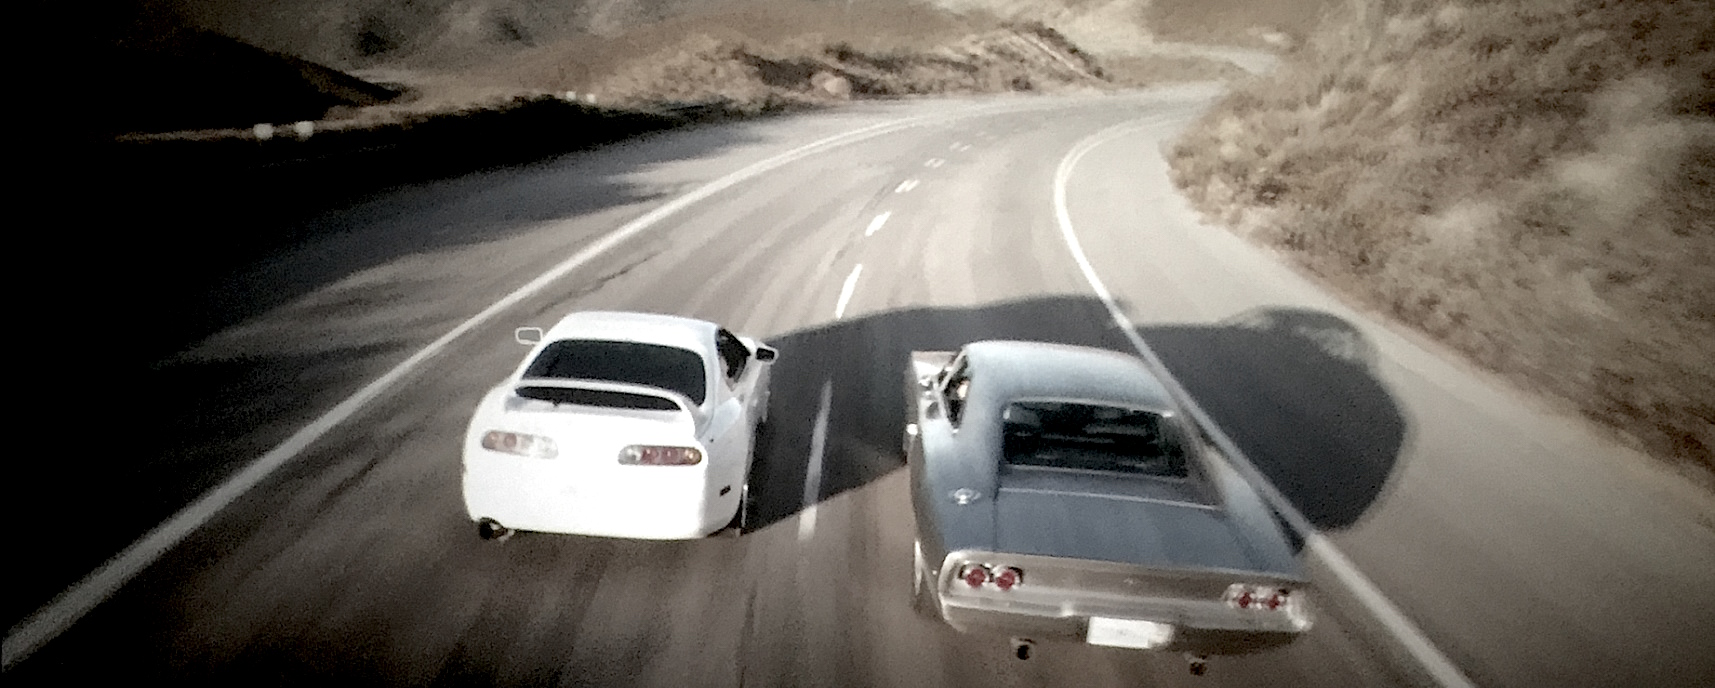 Fast And Furious 6 Doms Car Wallpaper Famously Fast The Hard Life Of Dom S 1970 Dodge Charger